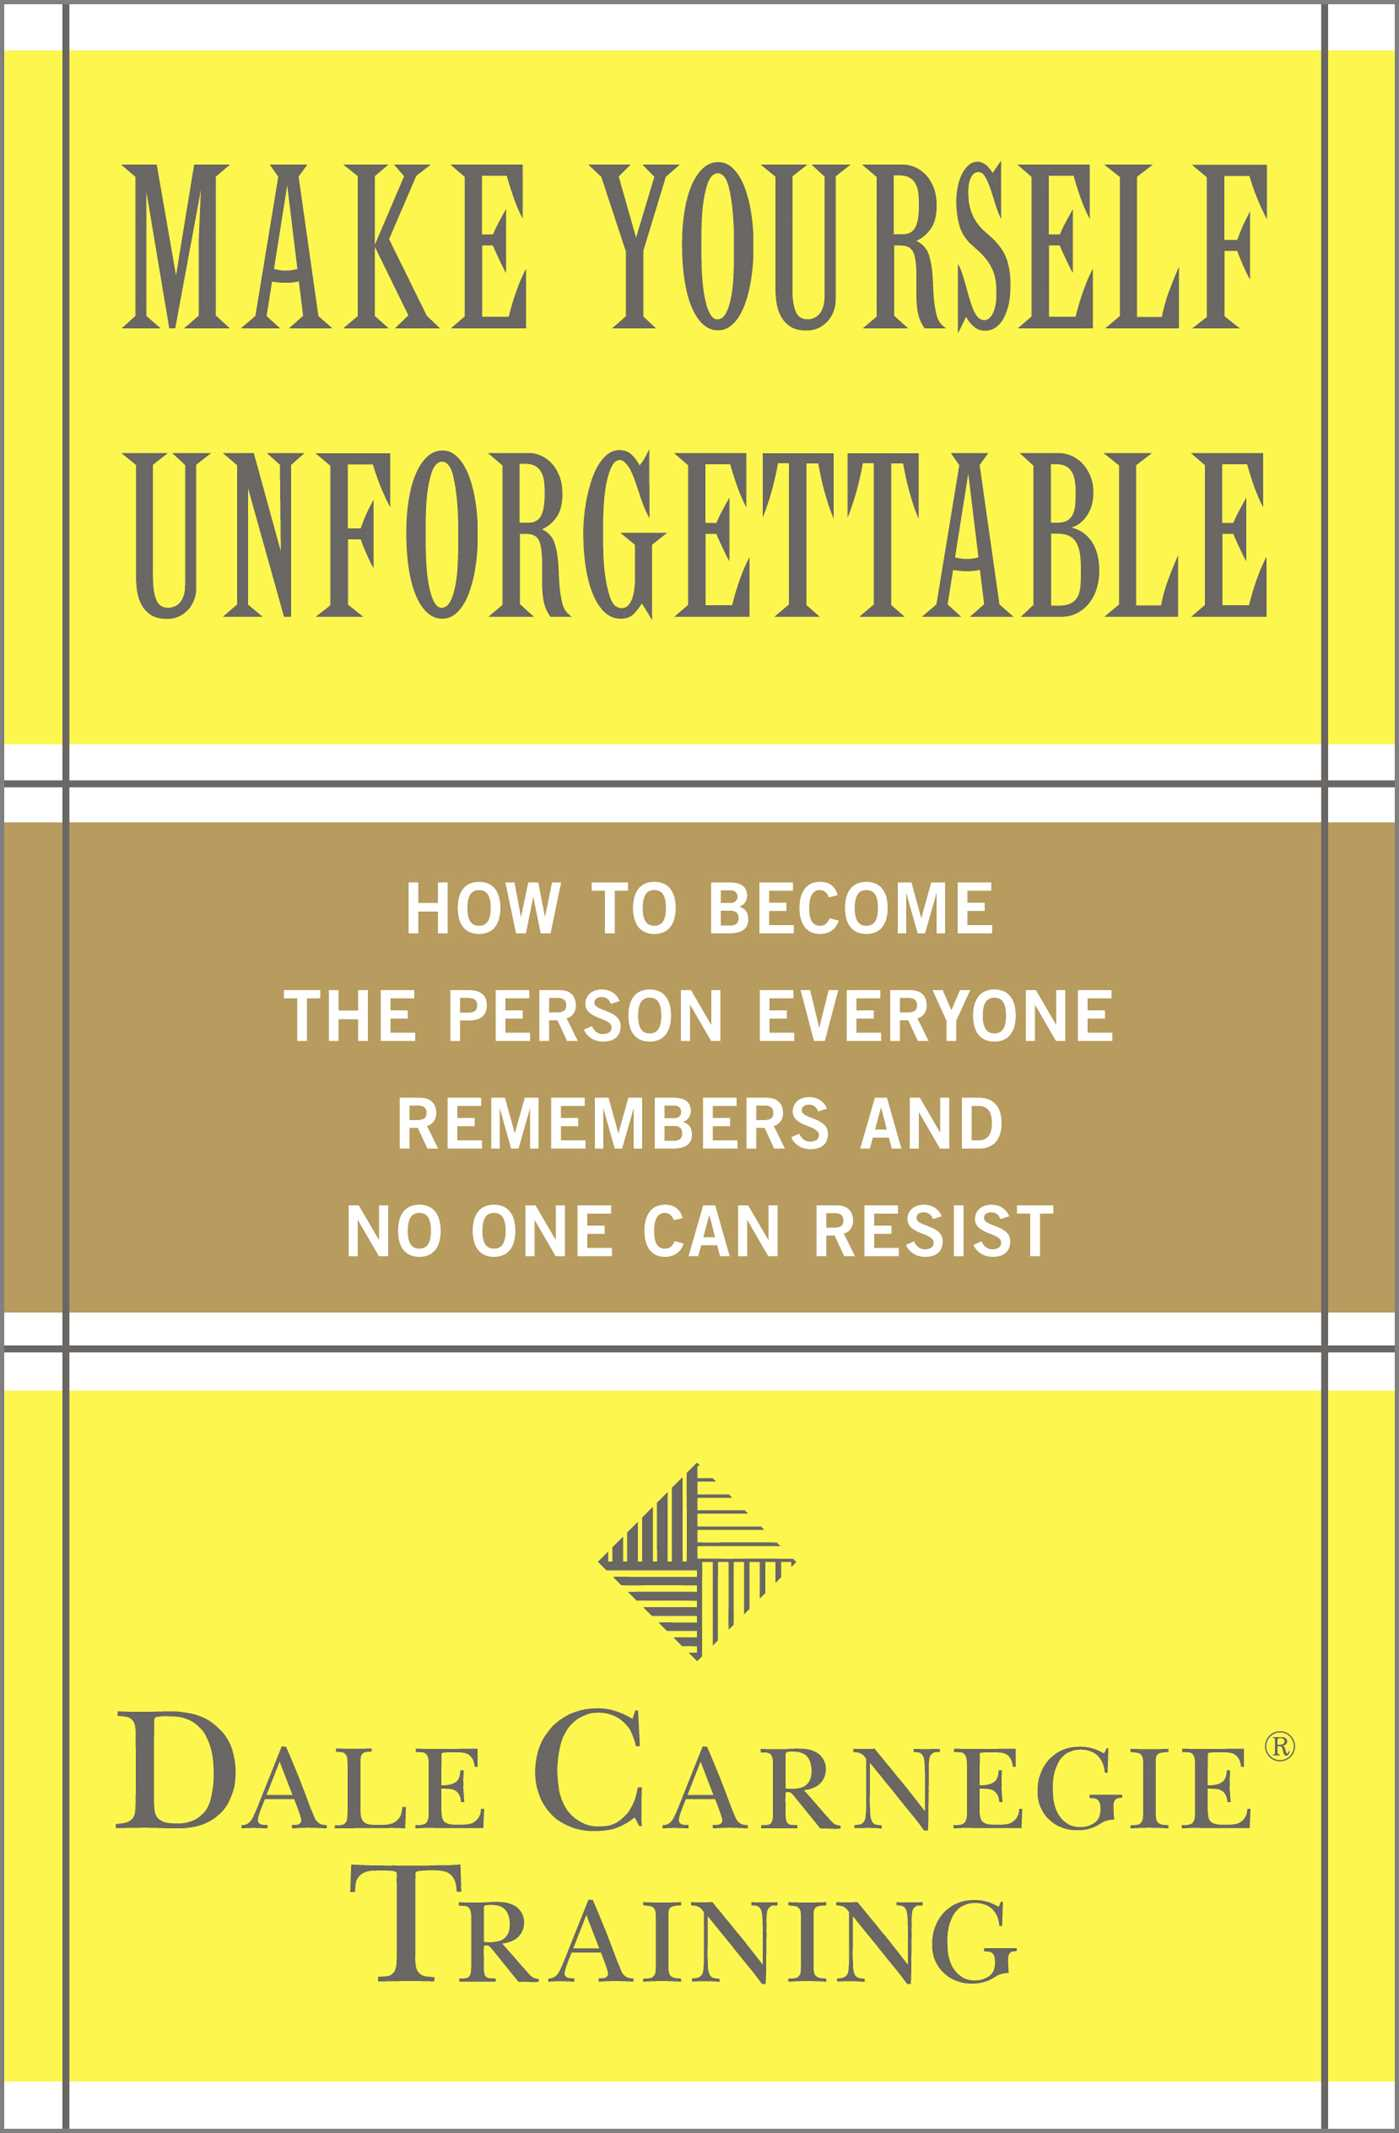 Download Ebook Make Yourself Unforgettable by Dale Carnegie Training Pdf